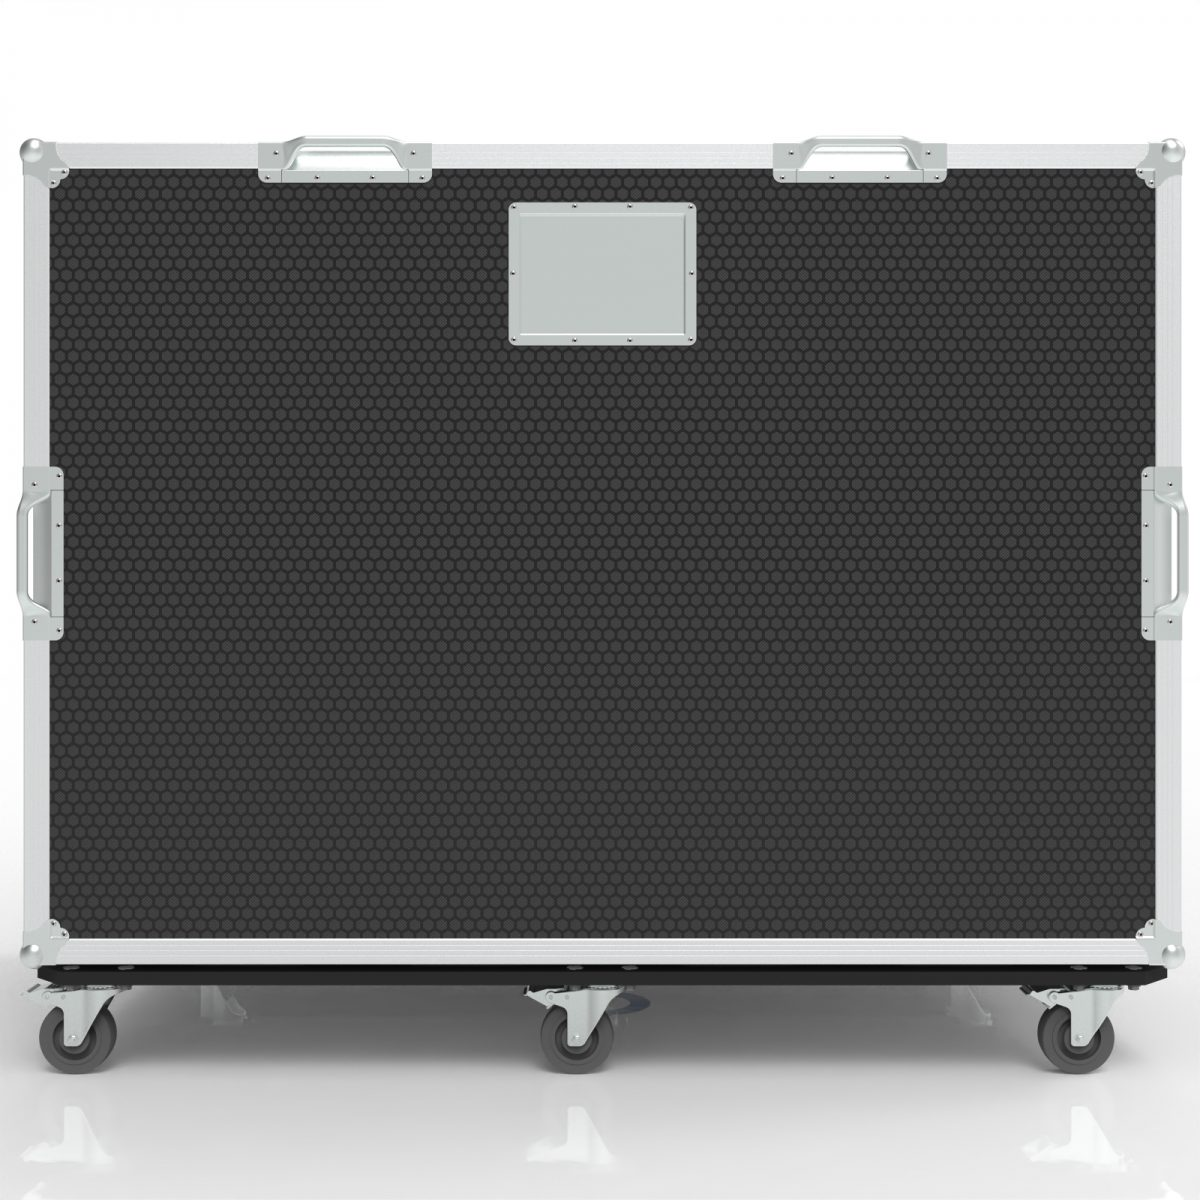 Video Production Workstation Road Case Flypack for WS Lux 2